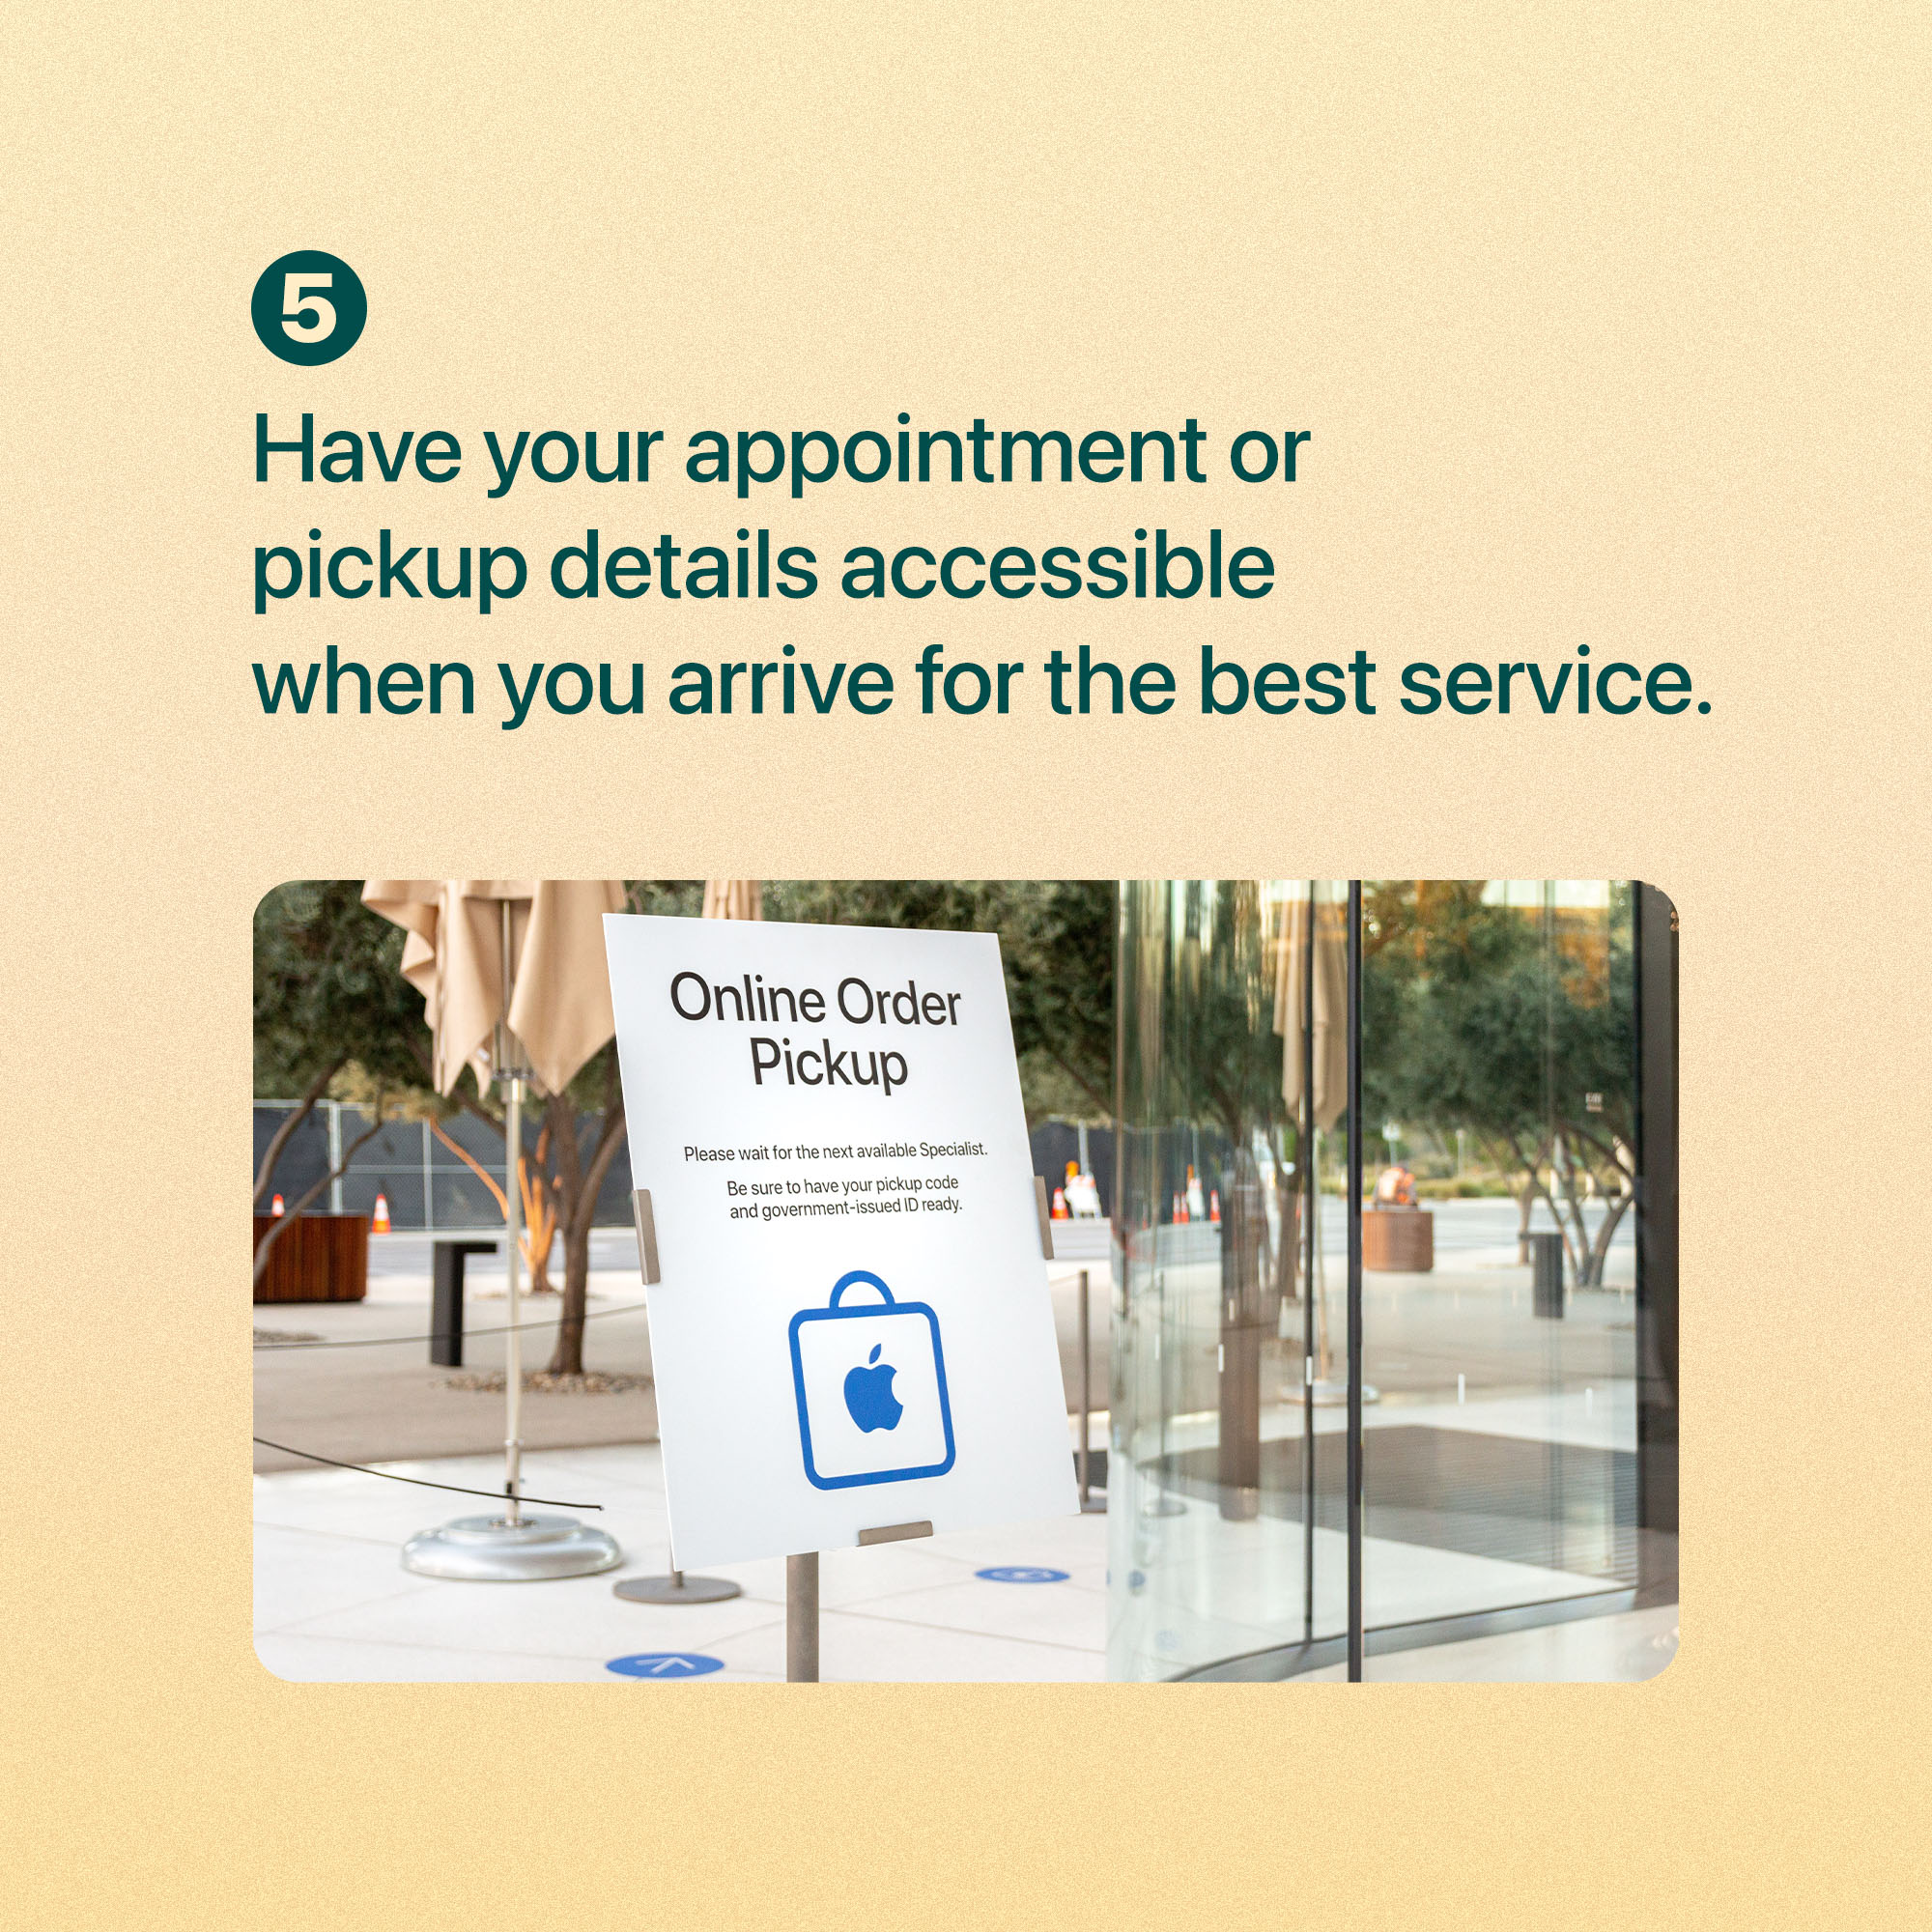 Have your appointment or pickup details accessible when you arrive for the best service.